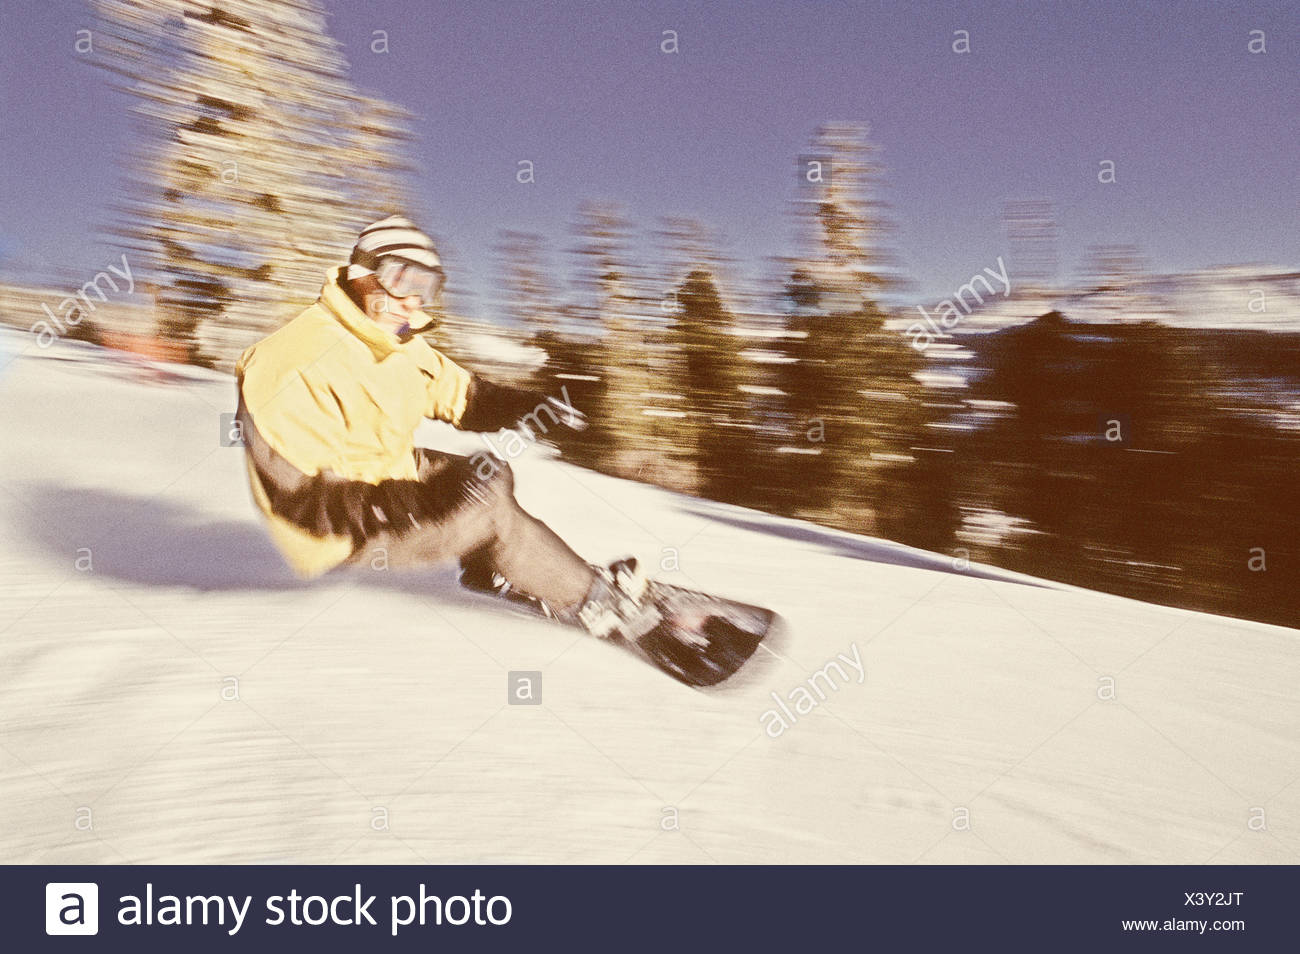 An antique filtered image of a man snowboarding at Diamond Peak above Lake Tahoe in Nevada Stock Photo